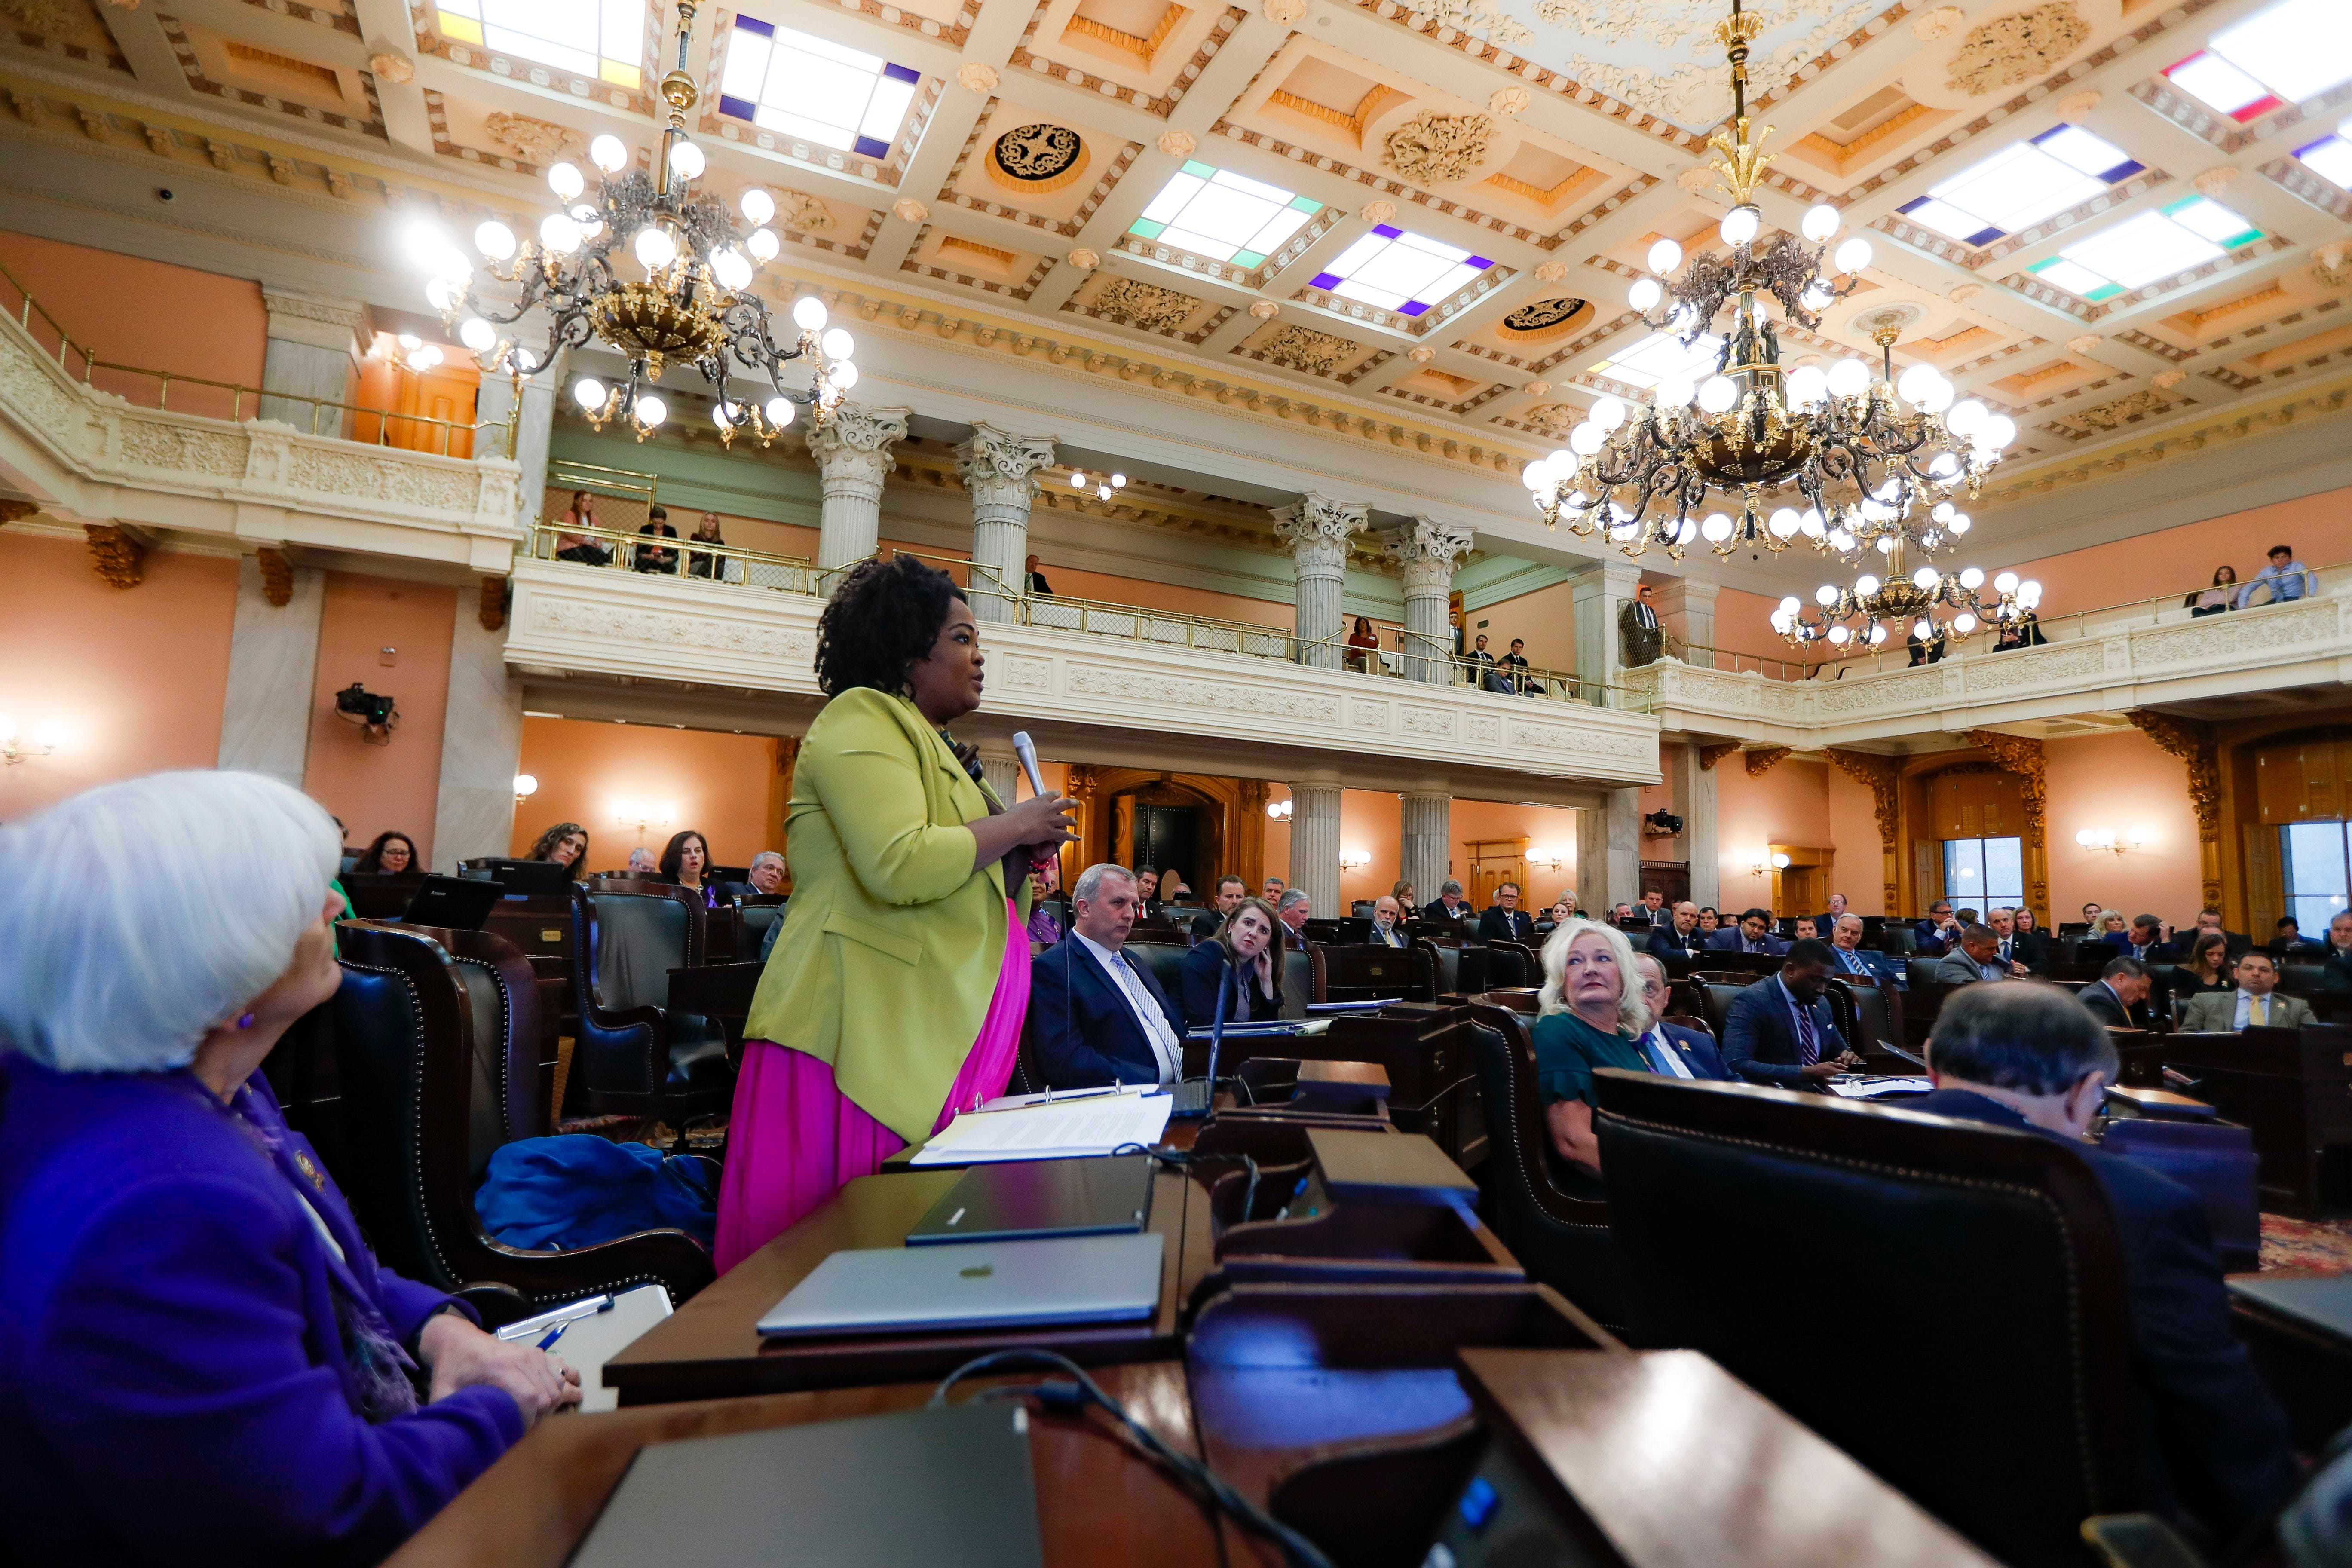 Democratic State Rep. Stephanie Howse of District 11 speaks during a legislative session at the Ohio Statehouse in 2019.